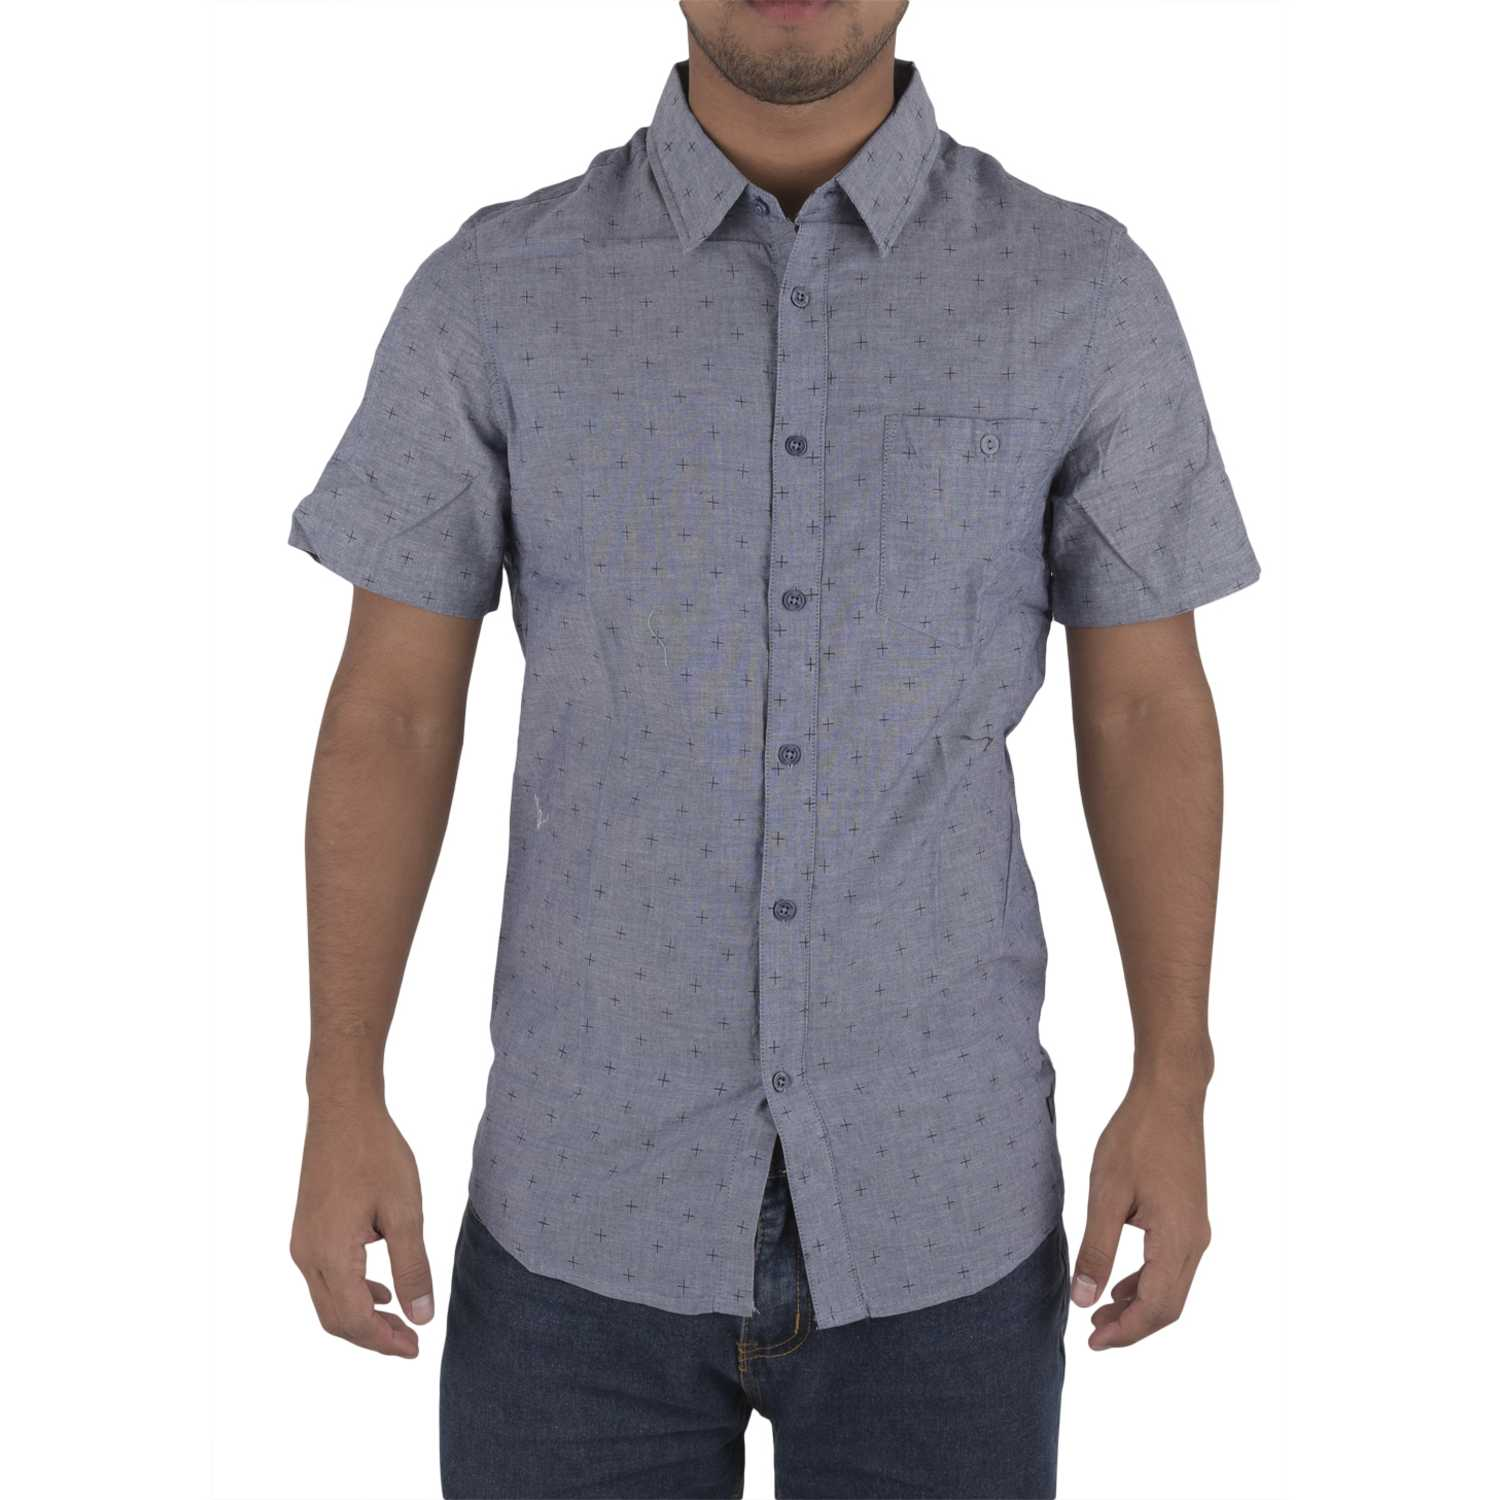 Camisas de Hombre Dunkelvolk Azul south cross